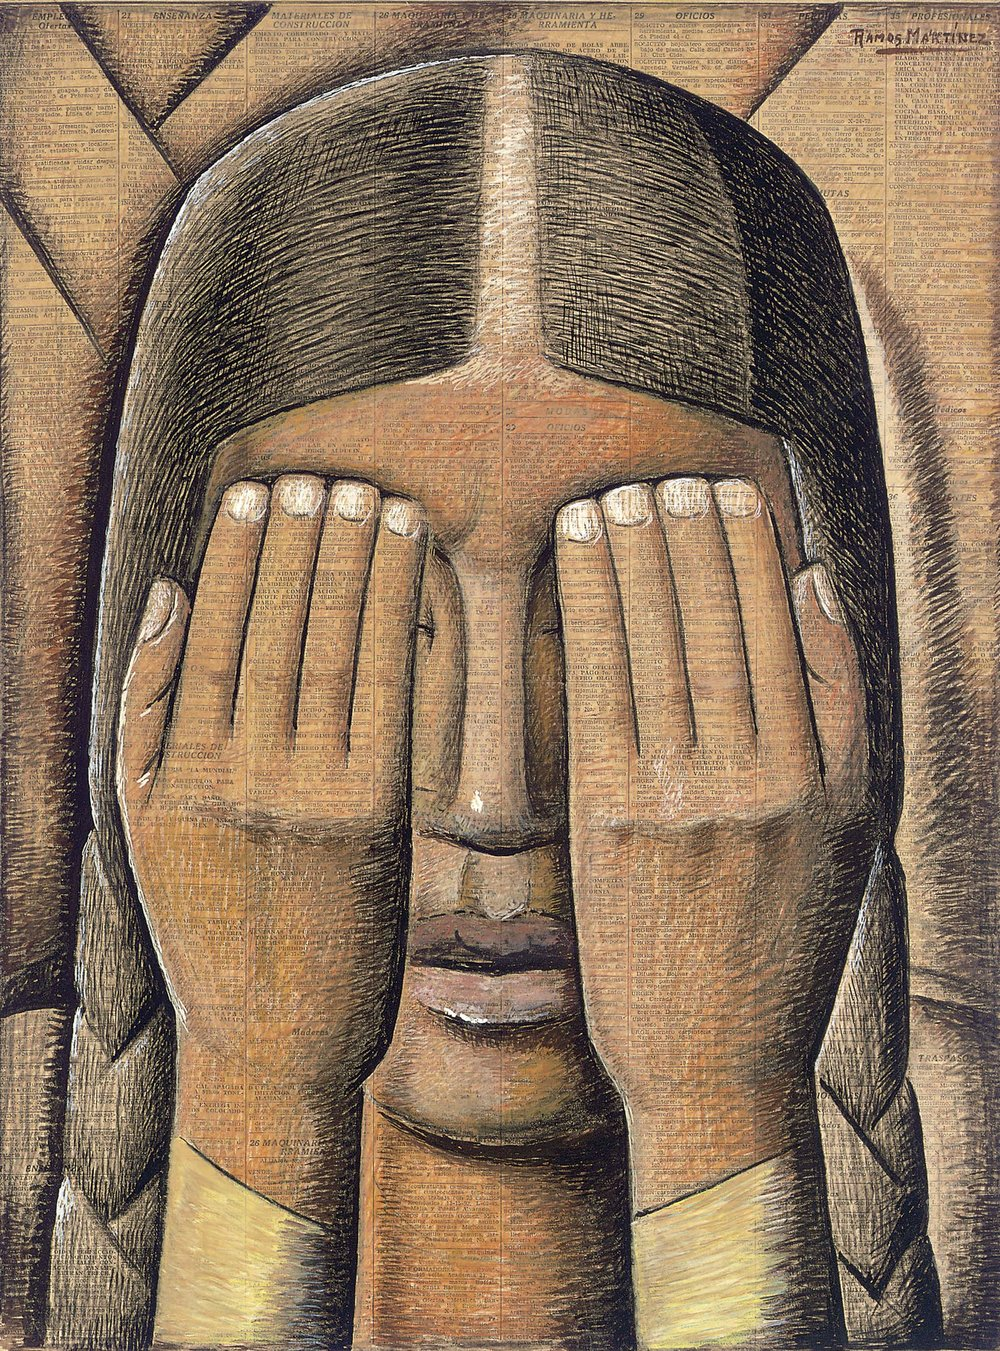 Súplica / Supplication  1942-1945 tempera on newsprint / temple sobre papel periódico ( El Universal , November 17, 1942) 21 x 16 inches; 53.3 x 40.6 centímetros